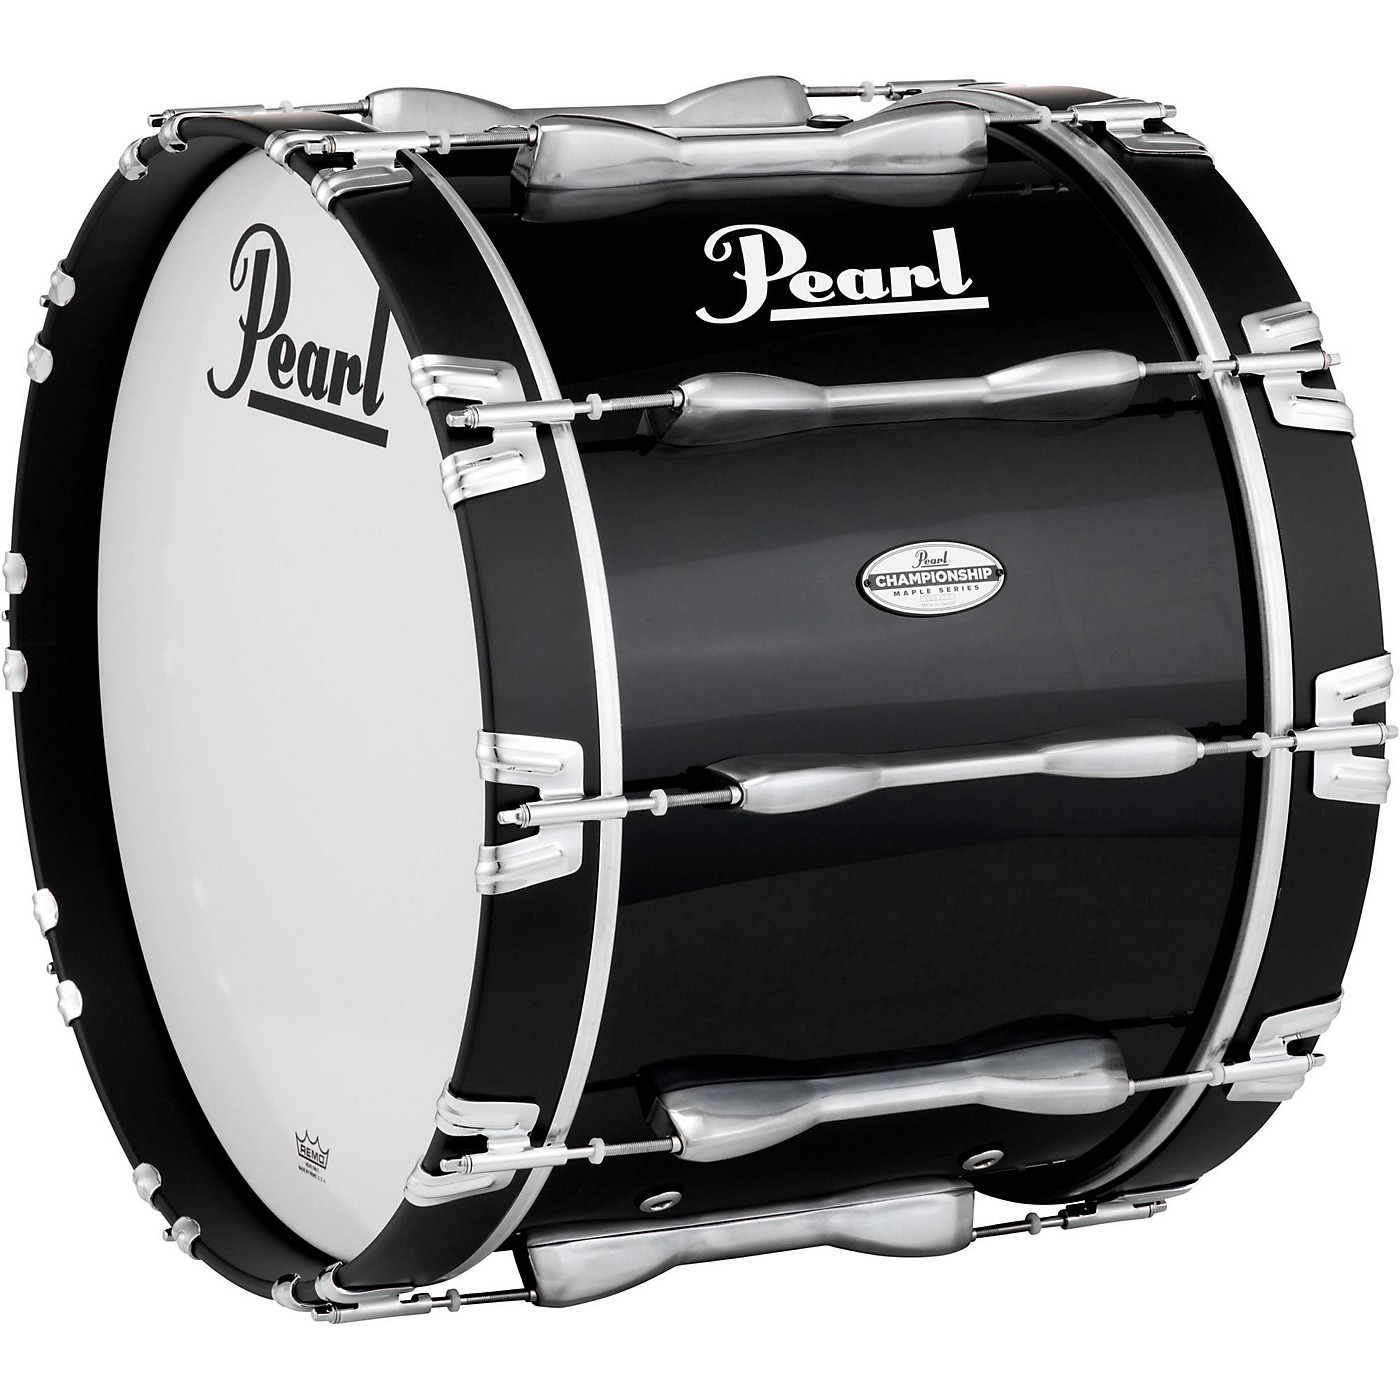 Pearl Championship Maple Marching Bass Drum 20x14 Inch thumbnail